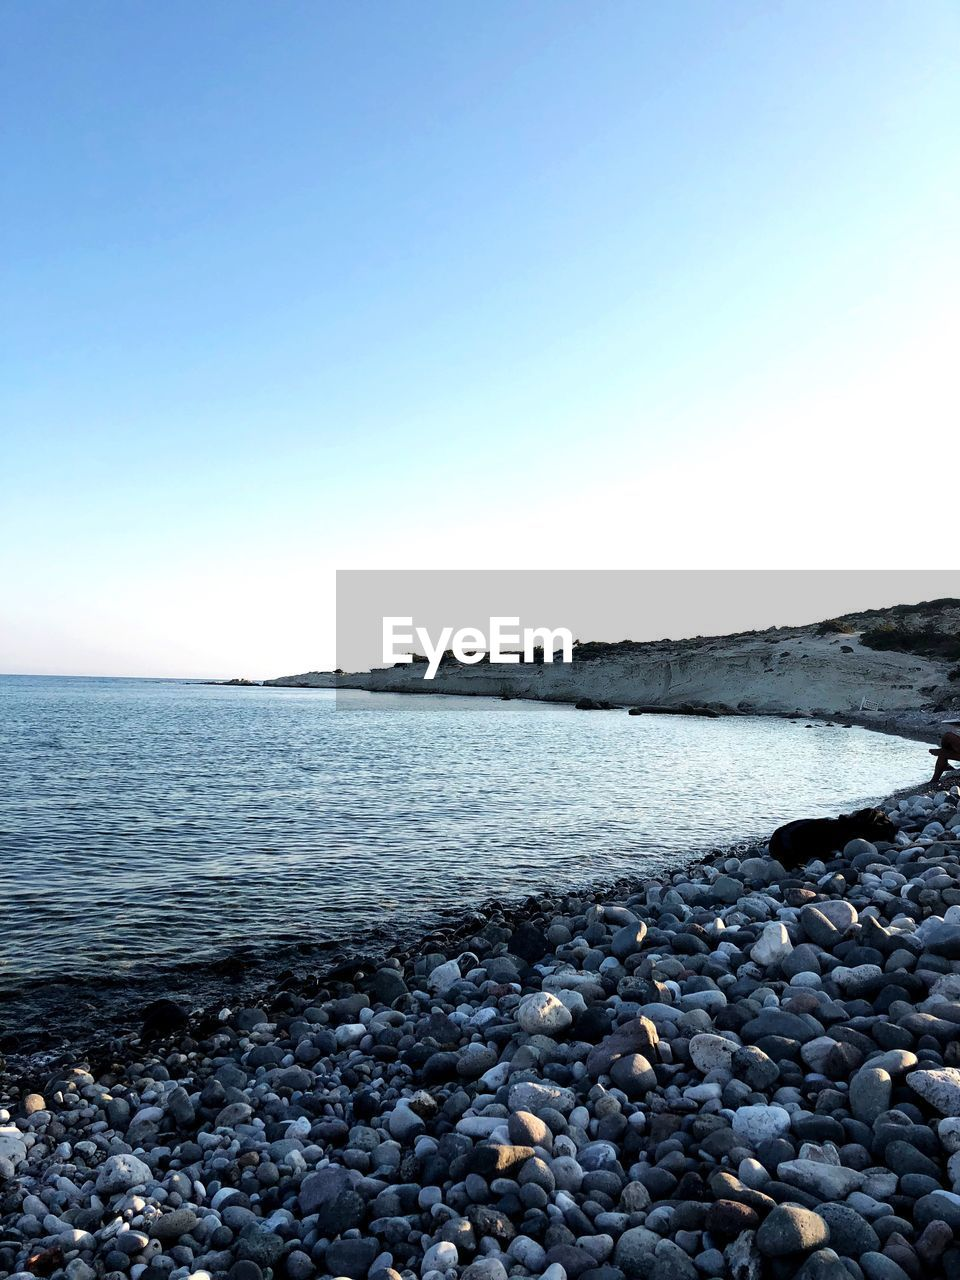 water, copy space, sky, pebble, clear sky, rock, sea, stone, solid, nature, beach, beauty in nature, land, stone - object, scenics - nature, tranquility, tranquil scene, no people, rock - object, horizon over water, outdoors